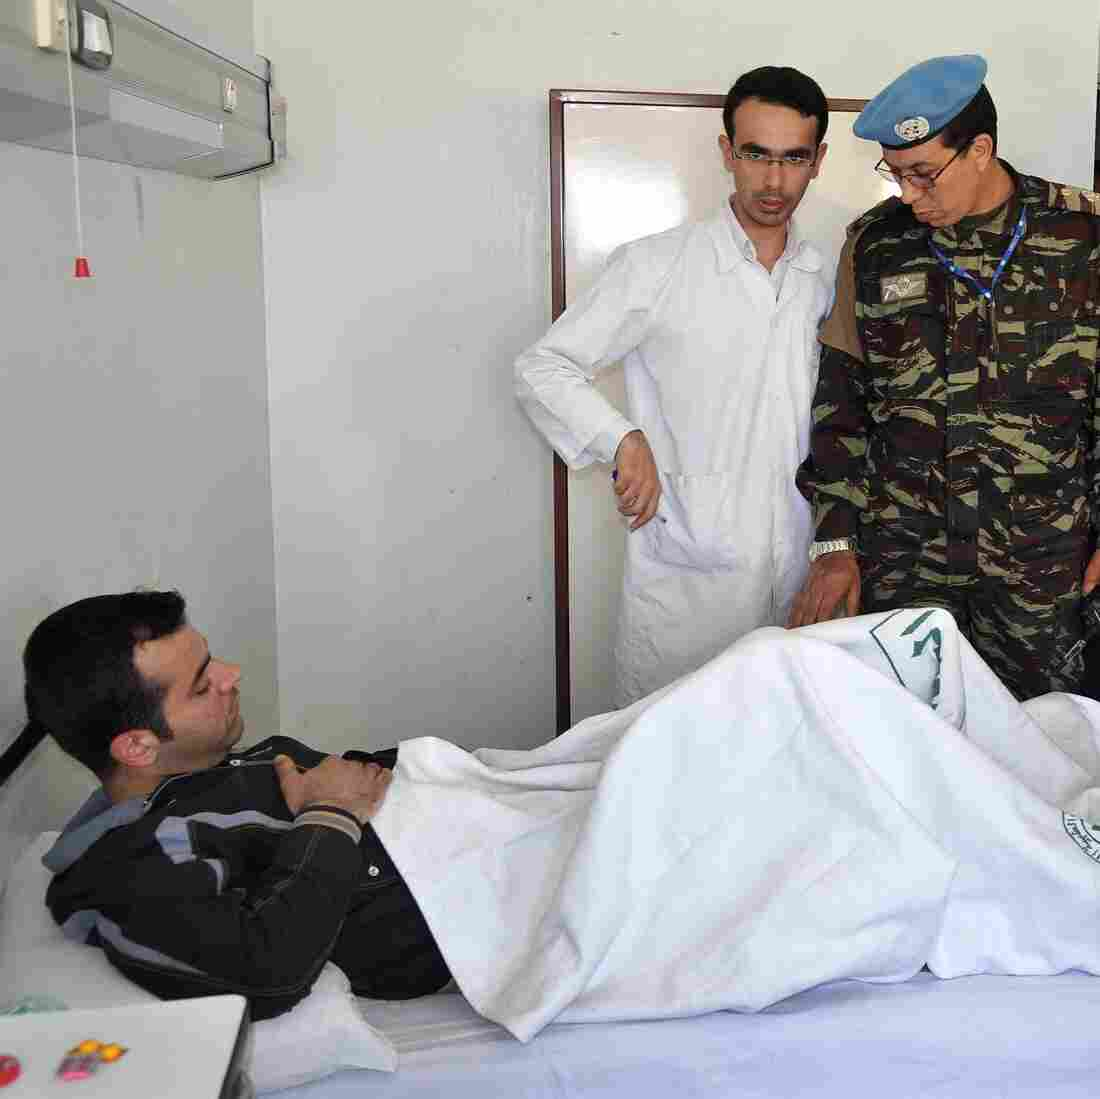 Members of the U.N. observers mission in Syria visit wounded soldiers and policemen at Tishreen Military Hospital in Damascus on May 23. Casualties among Syrian government forces are rising sharply.